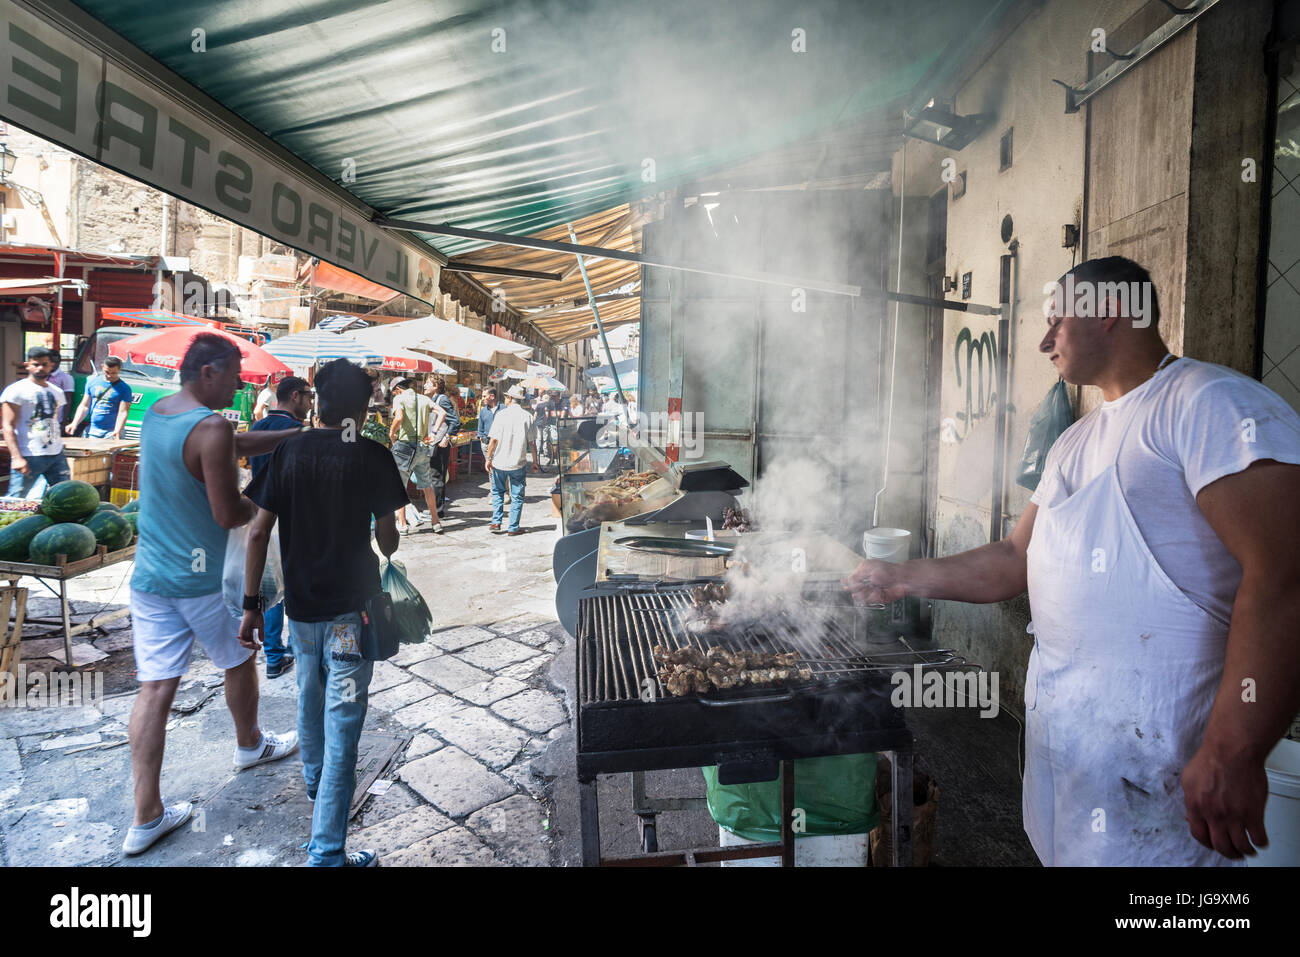 Street food vendor in The Ballaro Market in the Albergheria district of central Palermo, Sicily, Italy. - Stock Image